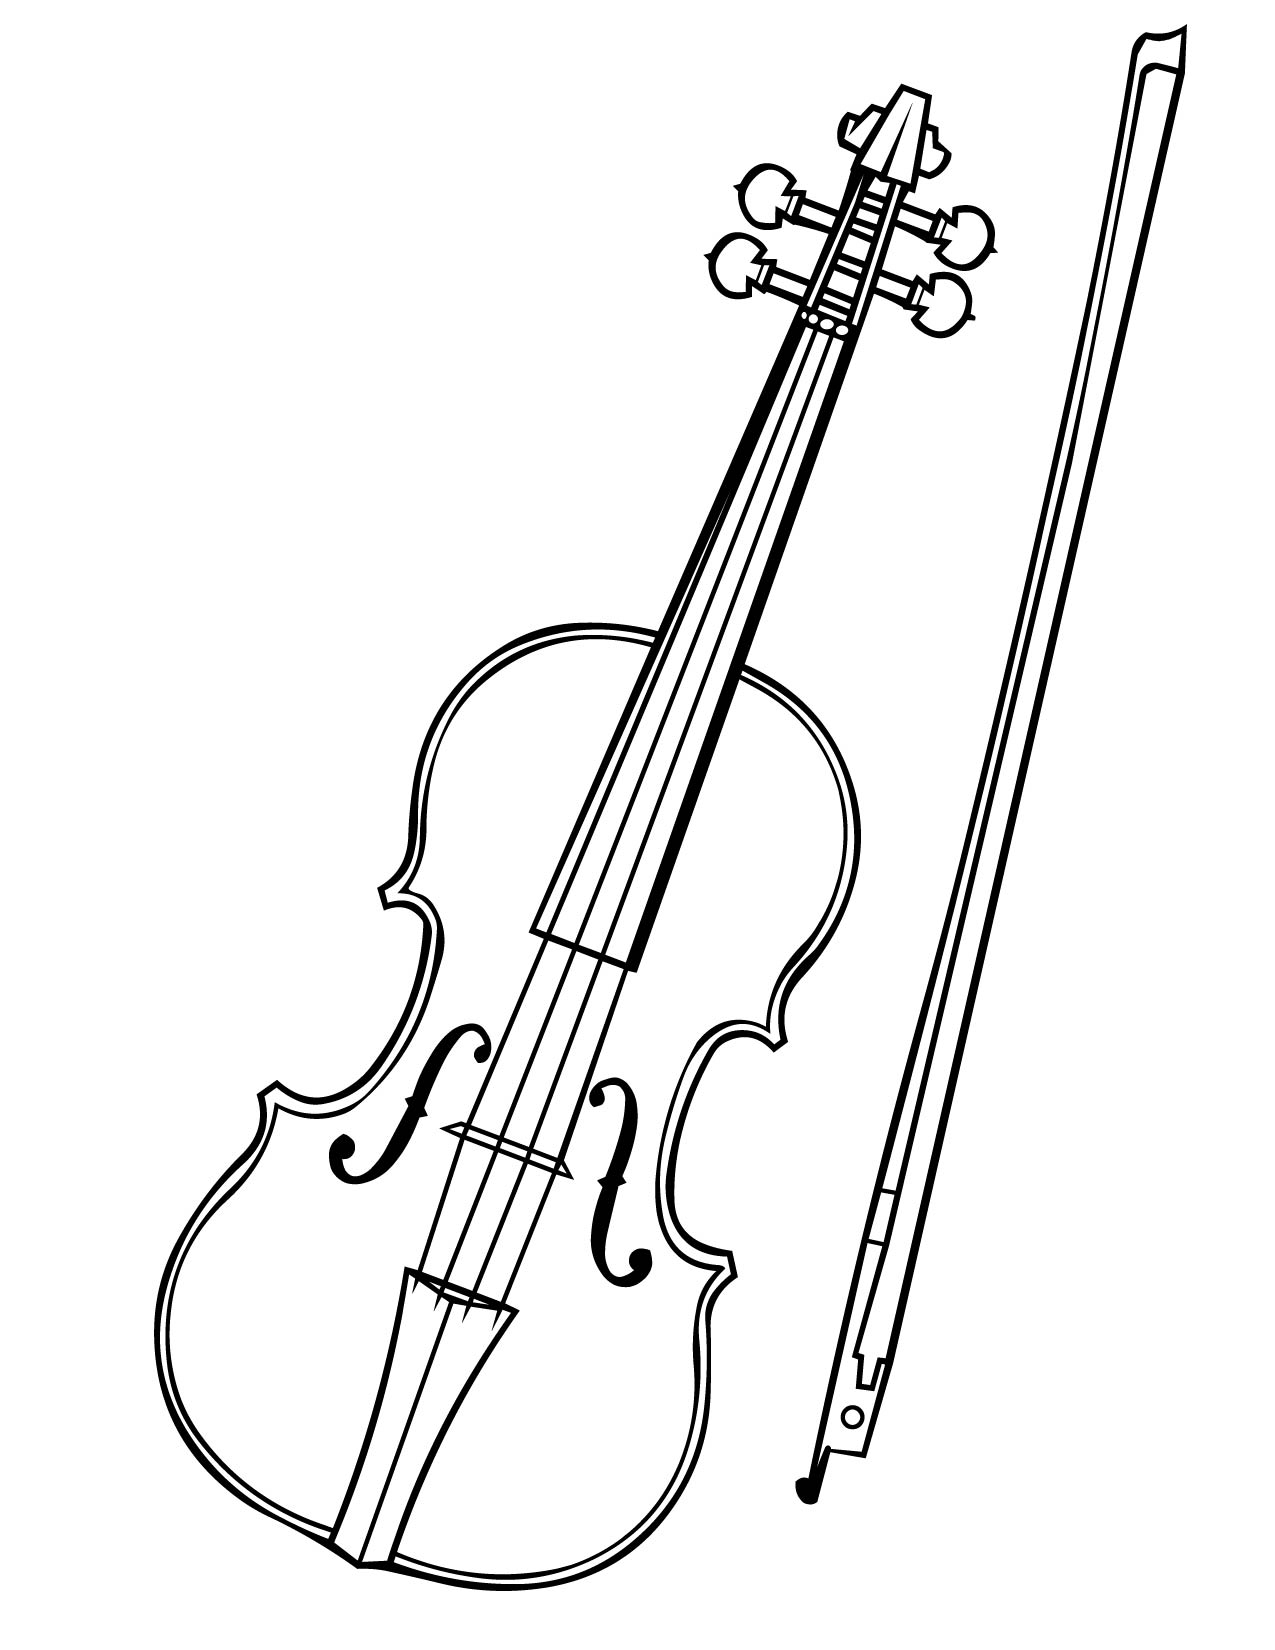 Free black and white musicians bow clipart freeuse download Free Violin Cliparts, Download Free Clip Art, Free Clip Art on ... freeuse download